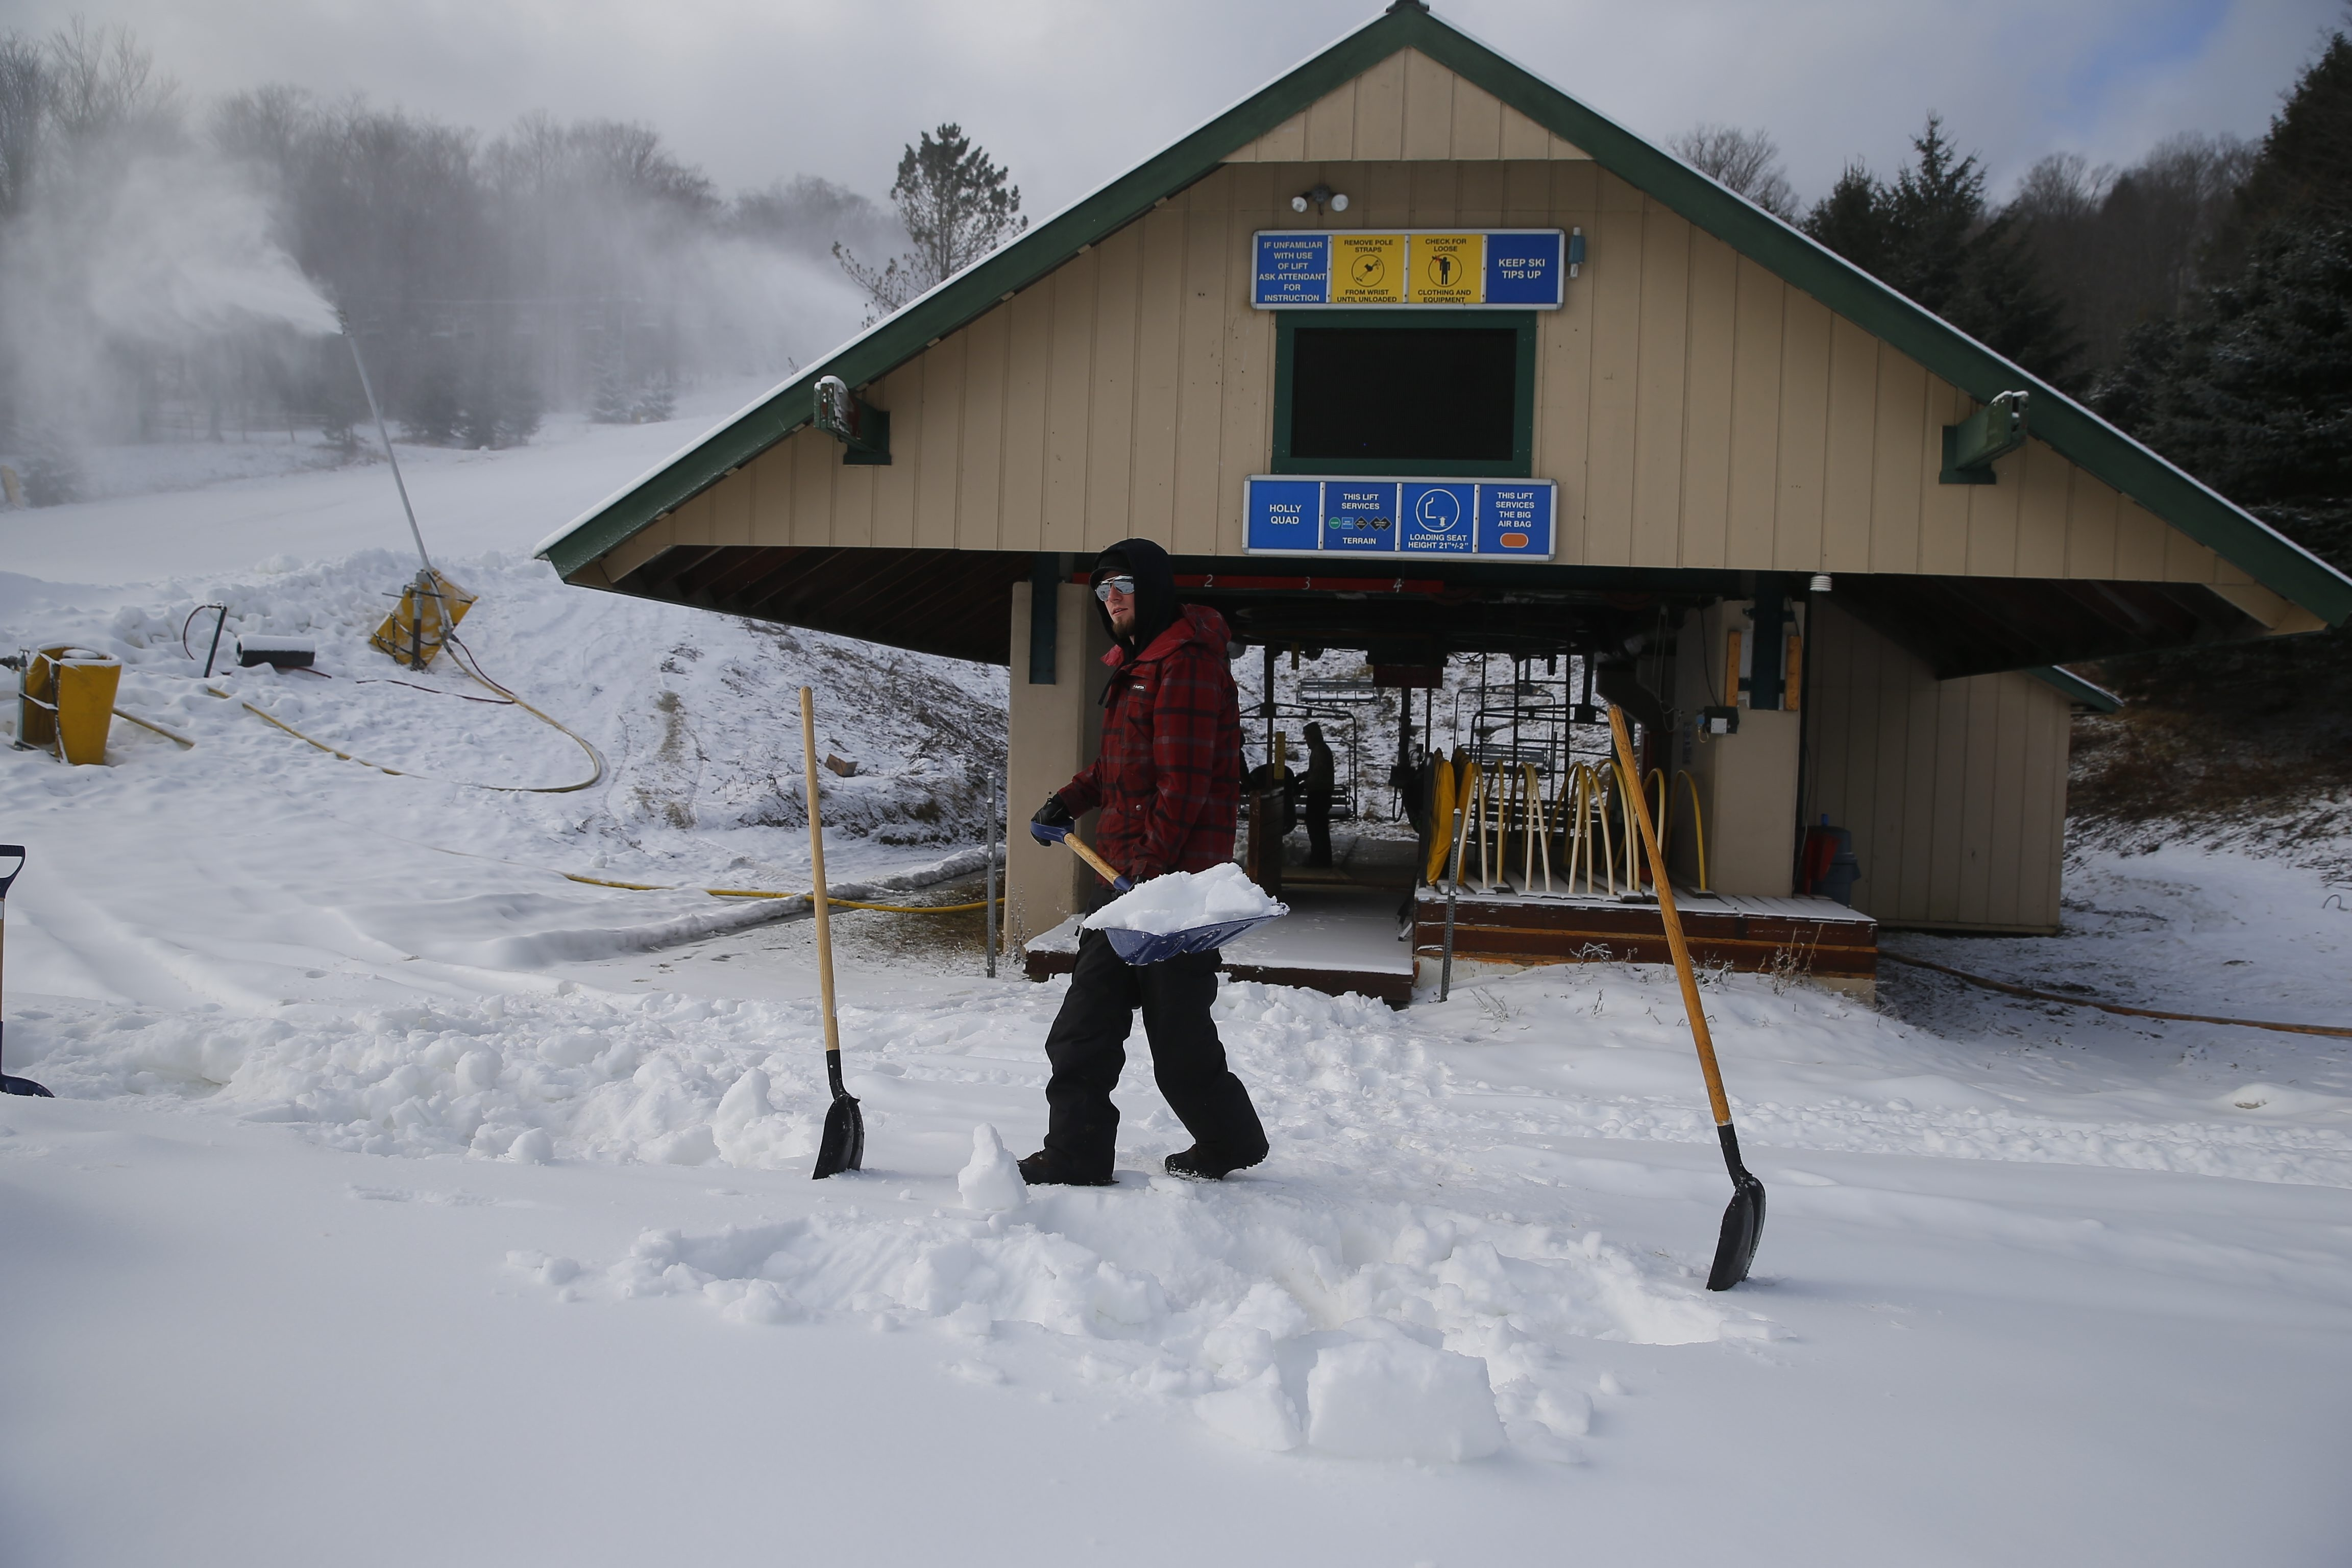 Kyle Anger, a lift attendant at Kissing Bridge in Glenwood, shovels snow at the lift takeoff as the ski resort gets ready for opening day. The forecast for snow and colder temperatures is just what was ordered in Western New York's ski country.